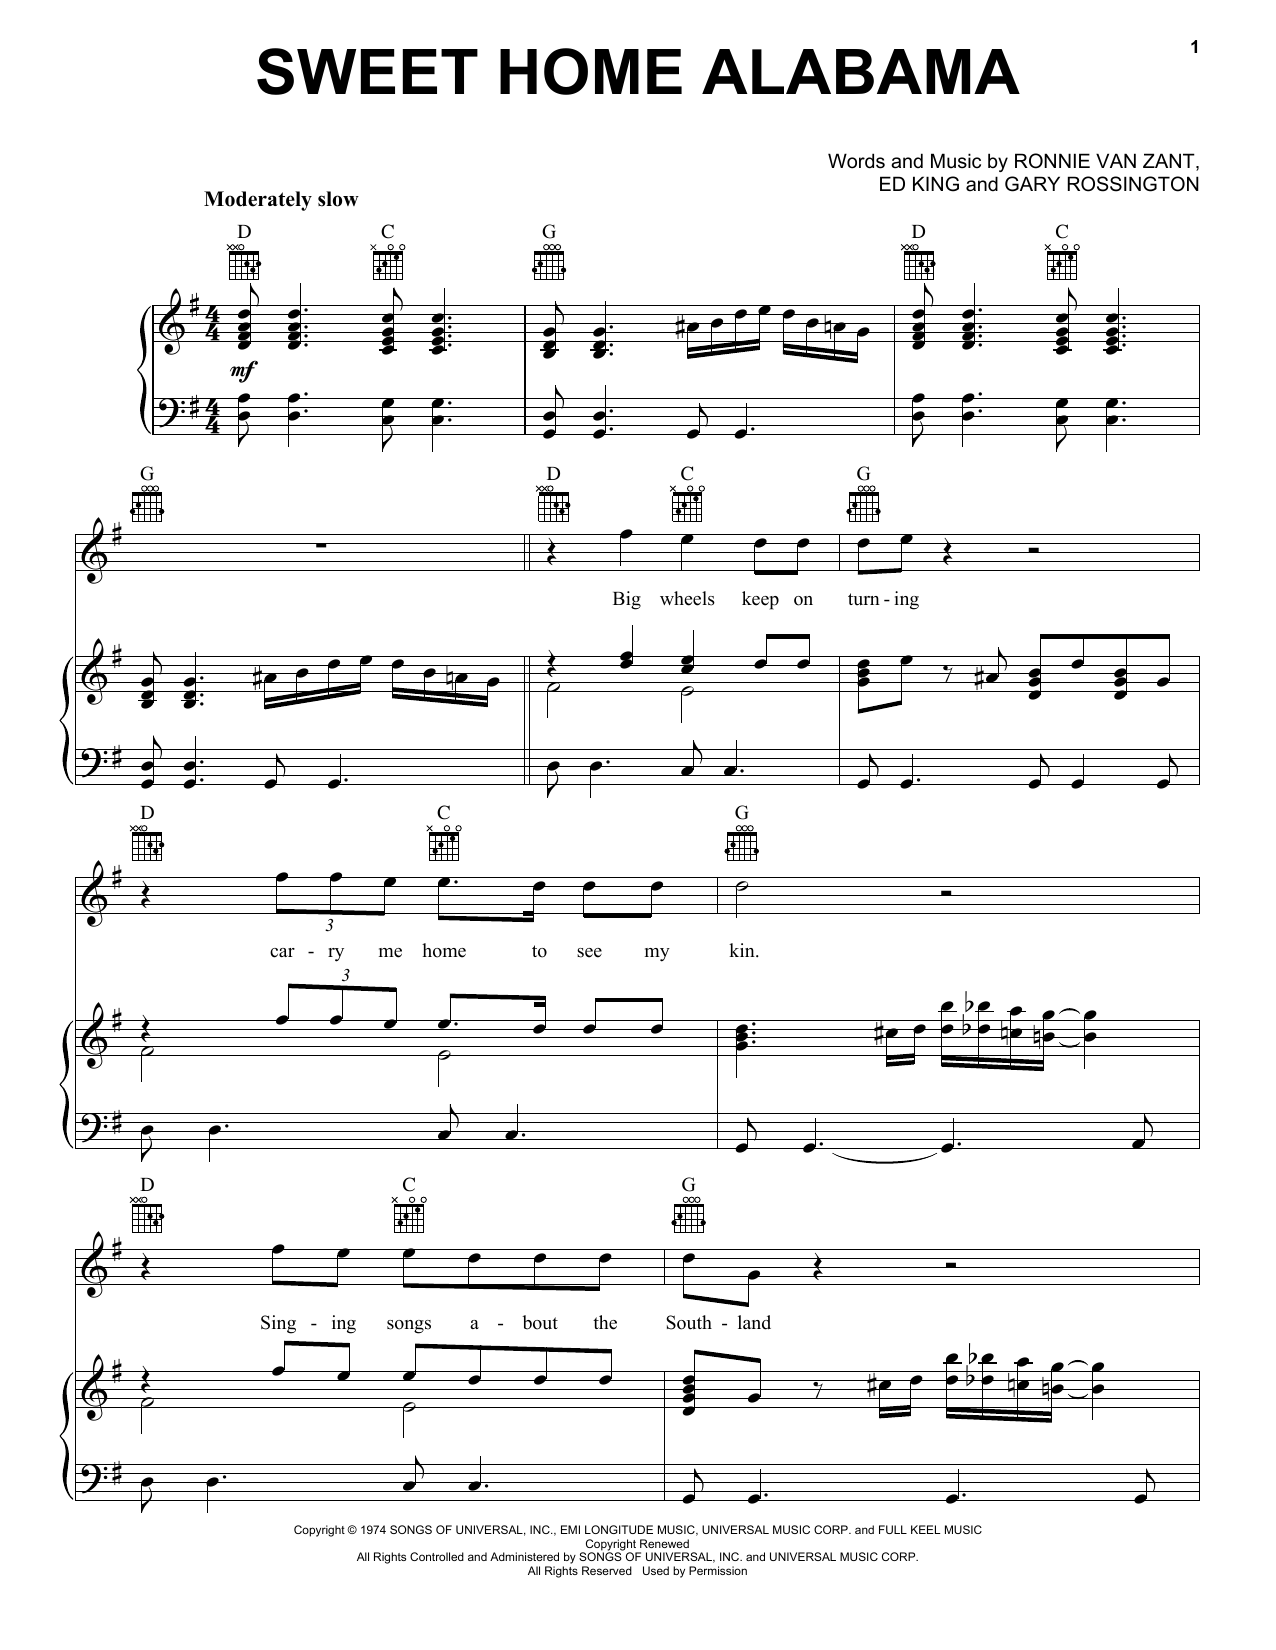 Banjo banjo tabs sweet home alabama : Sweet Home Alabama | Sheet Music Direct